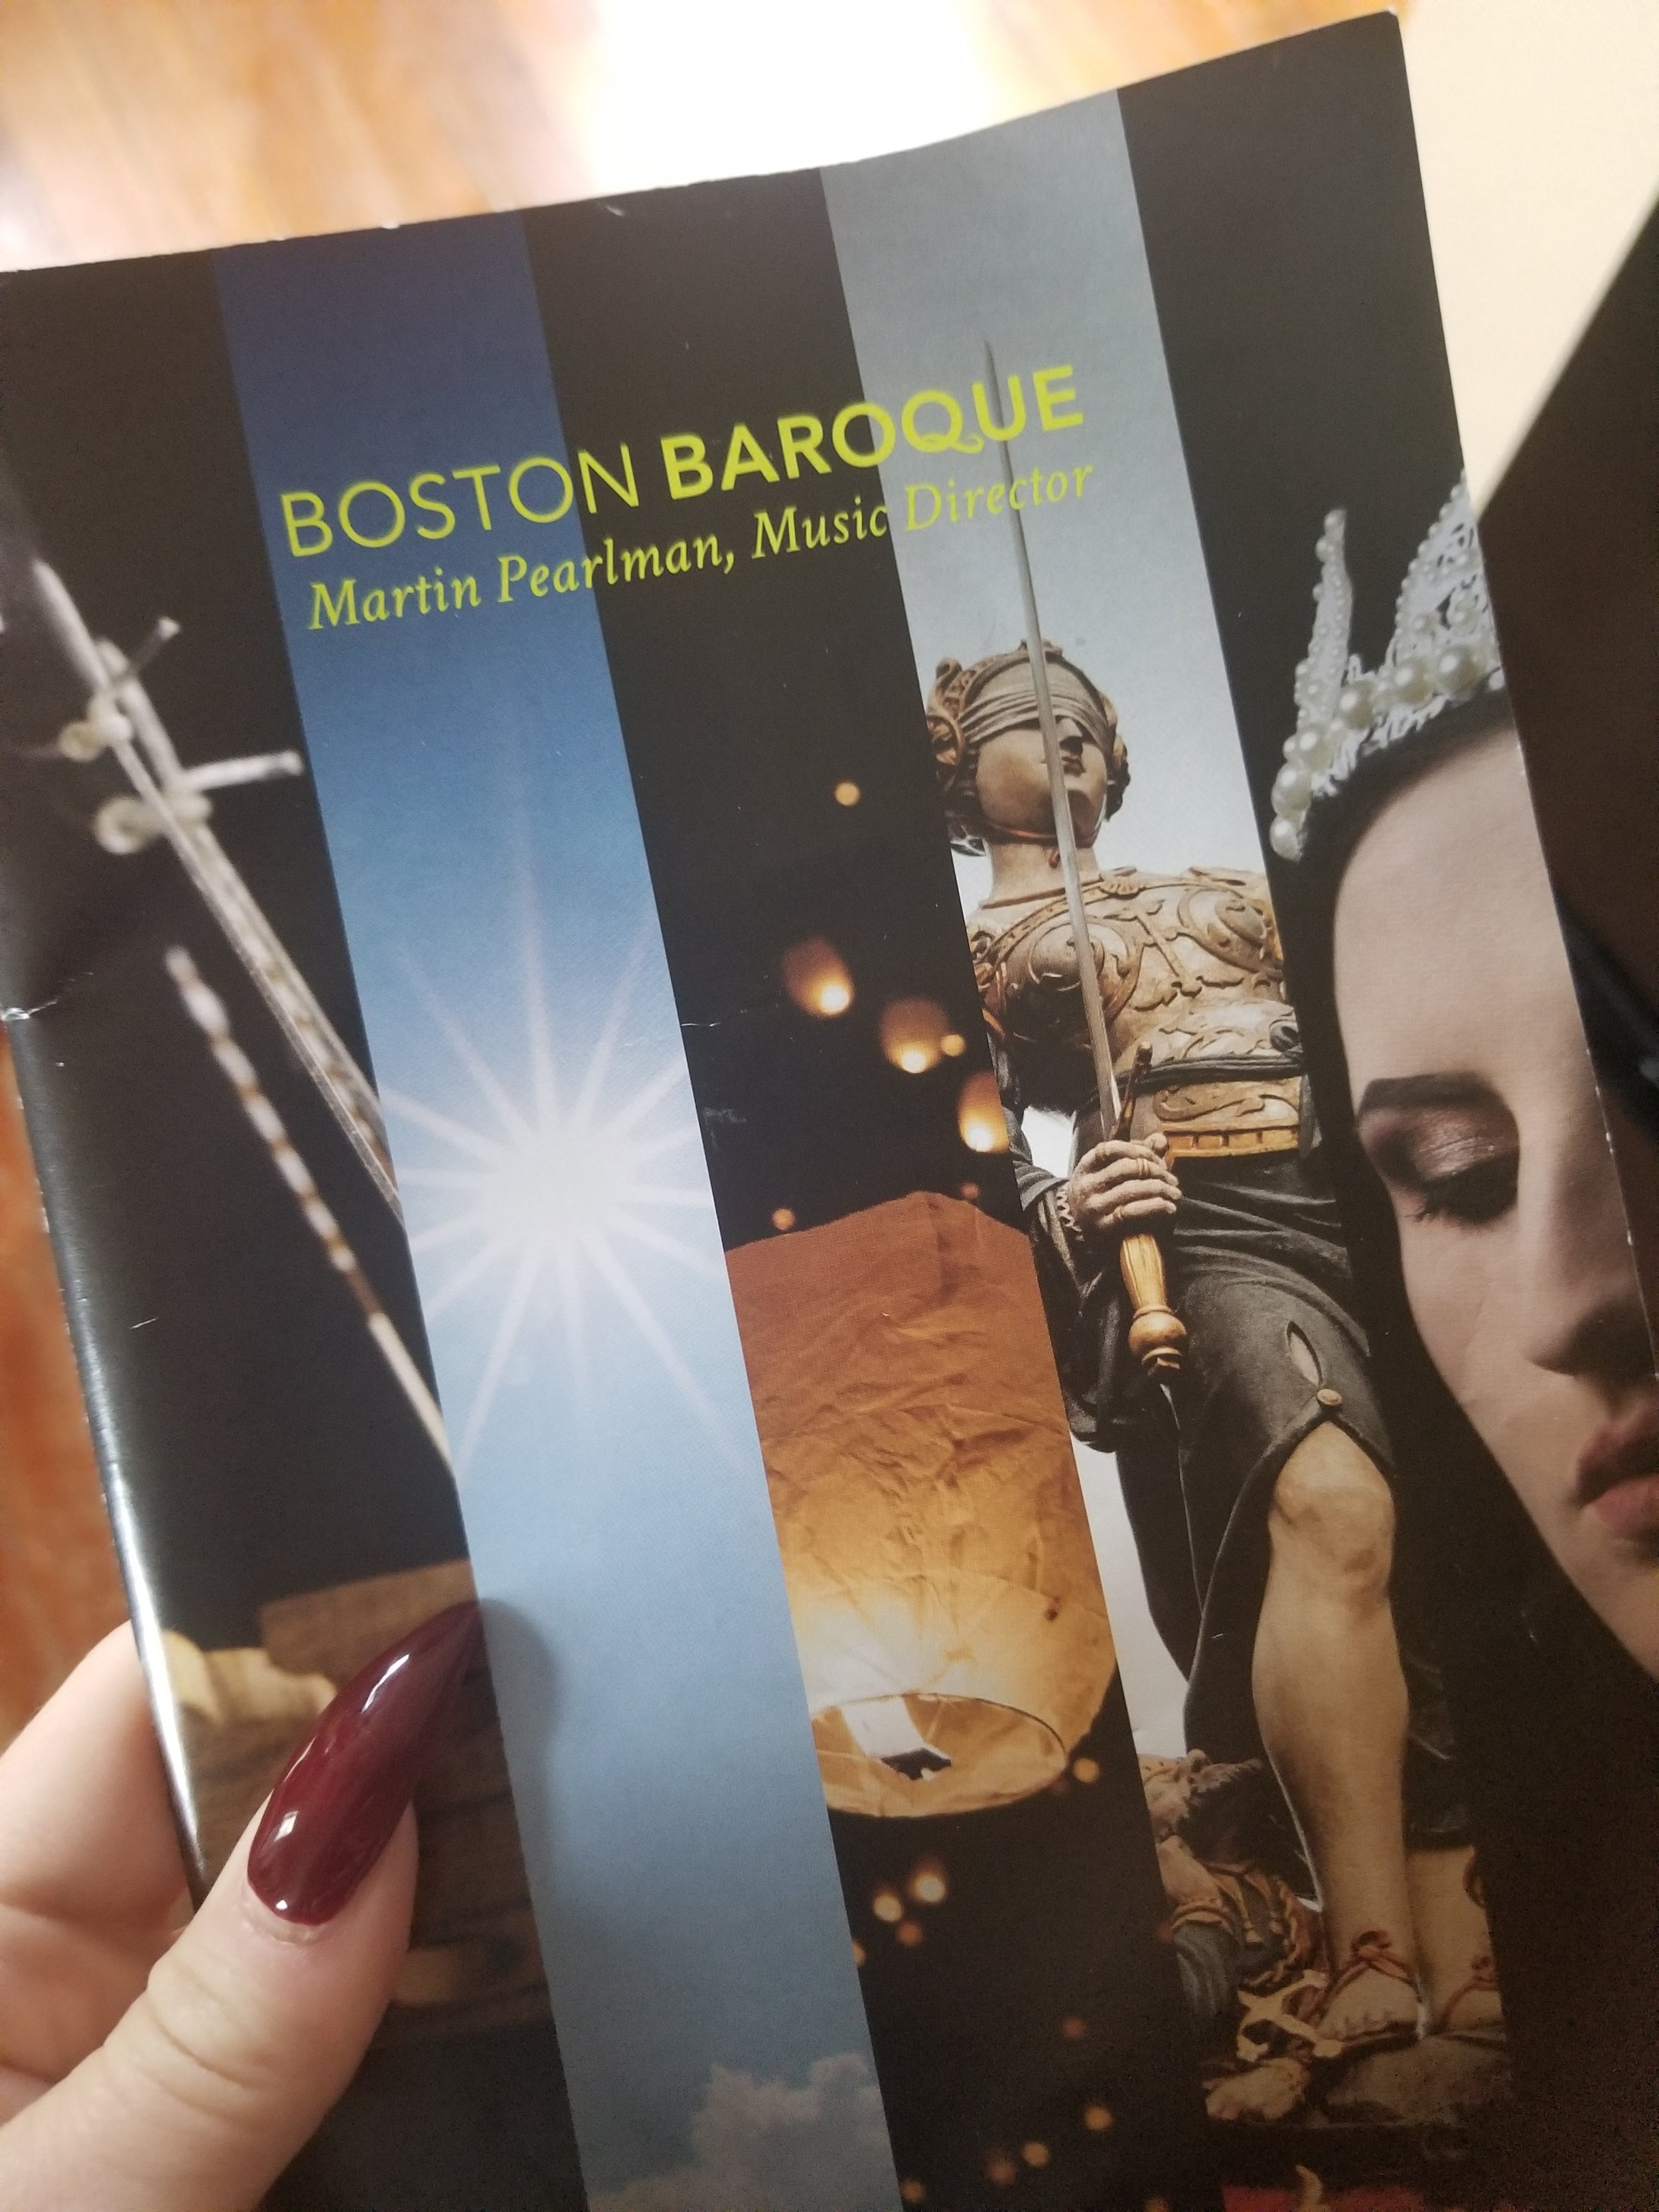 The Boston Baroque program with talon provided by Me.